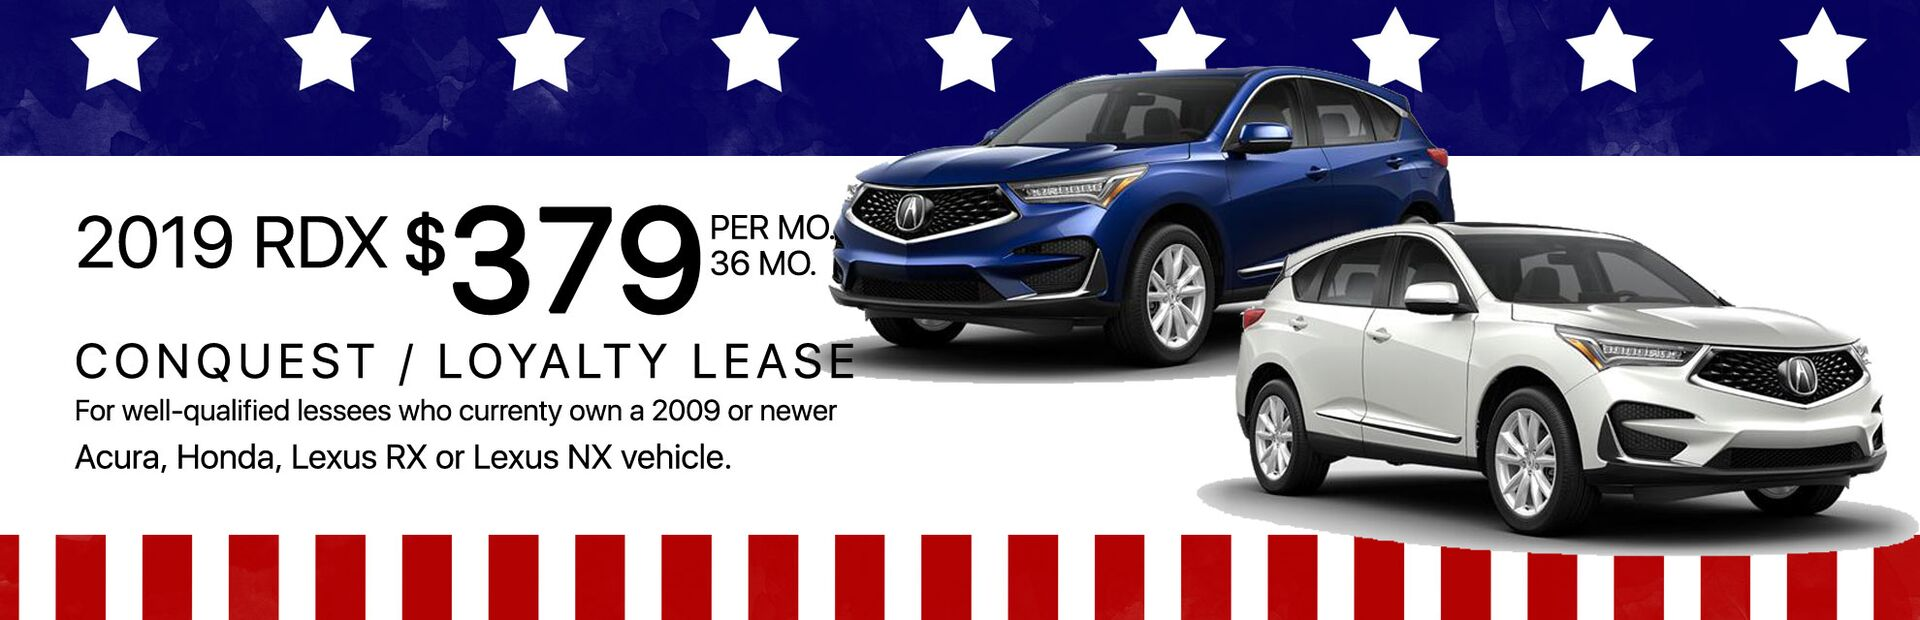 2019 Acura RDX Memorial Day Sale Marin Acura Lease Special